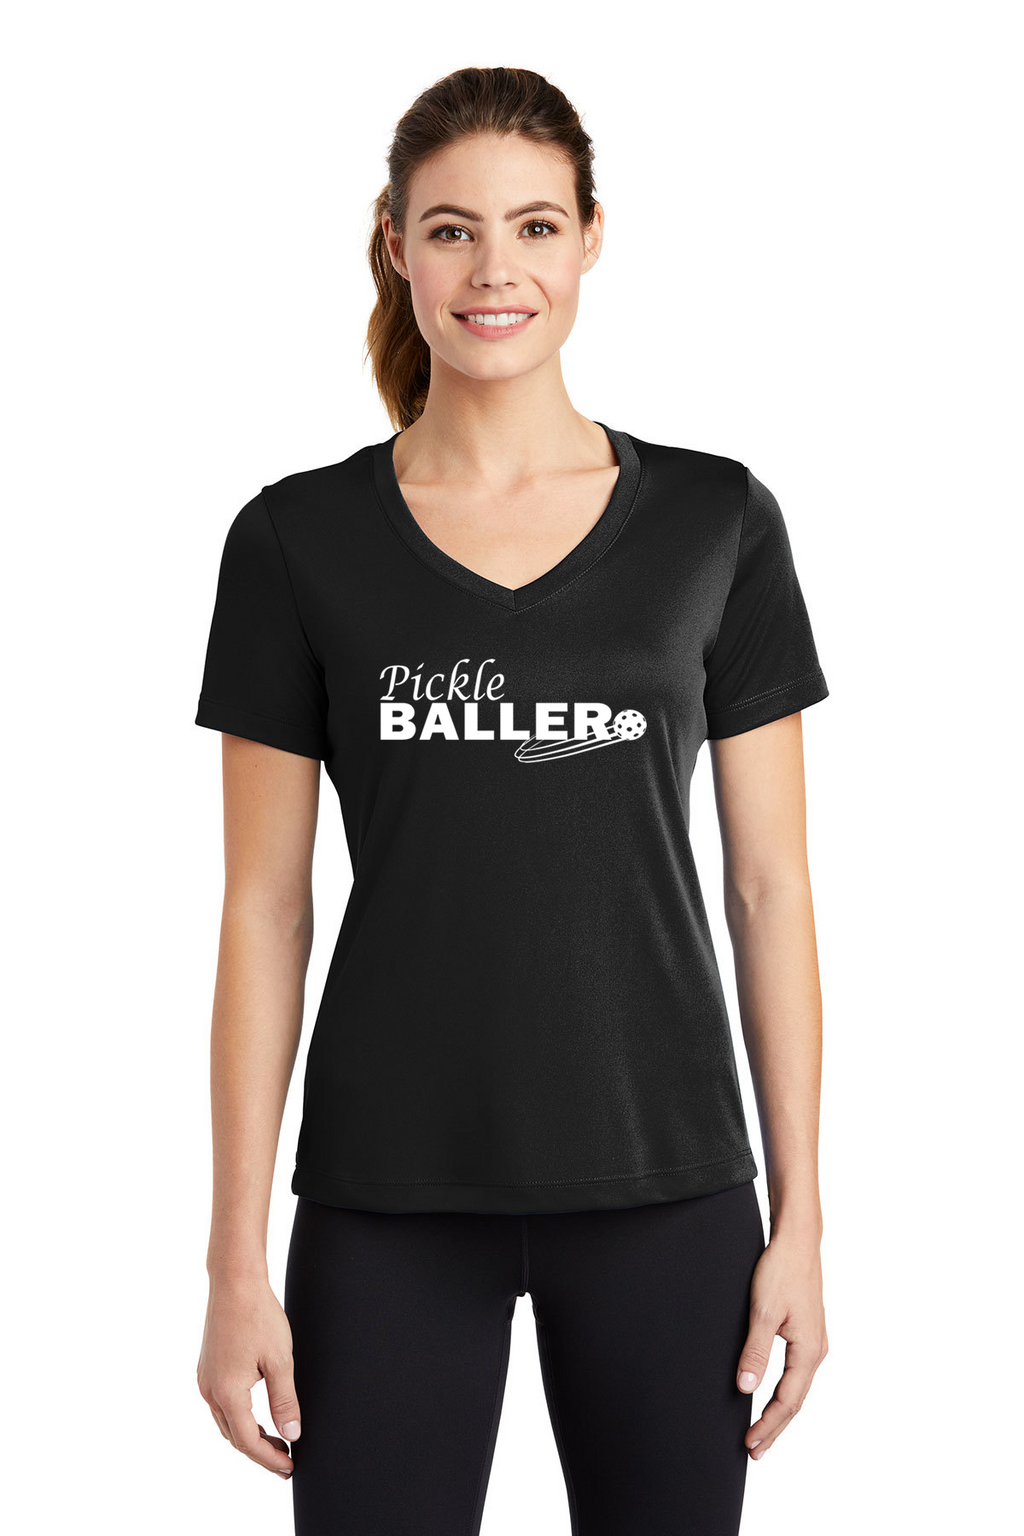 Ladies Short Sleeve Performance V-Neck Tee 'Pickleballer'